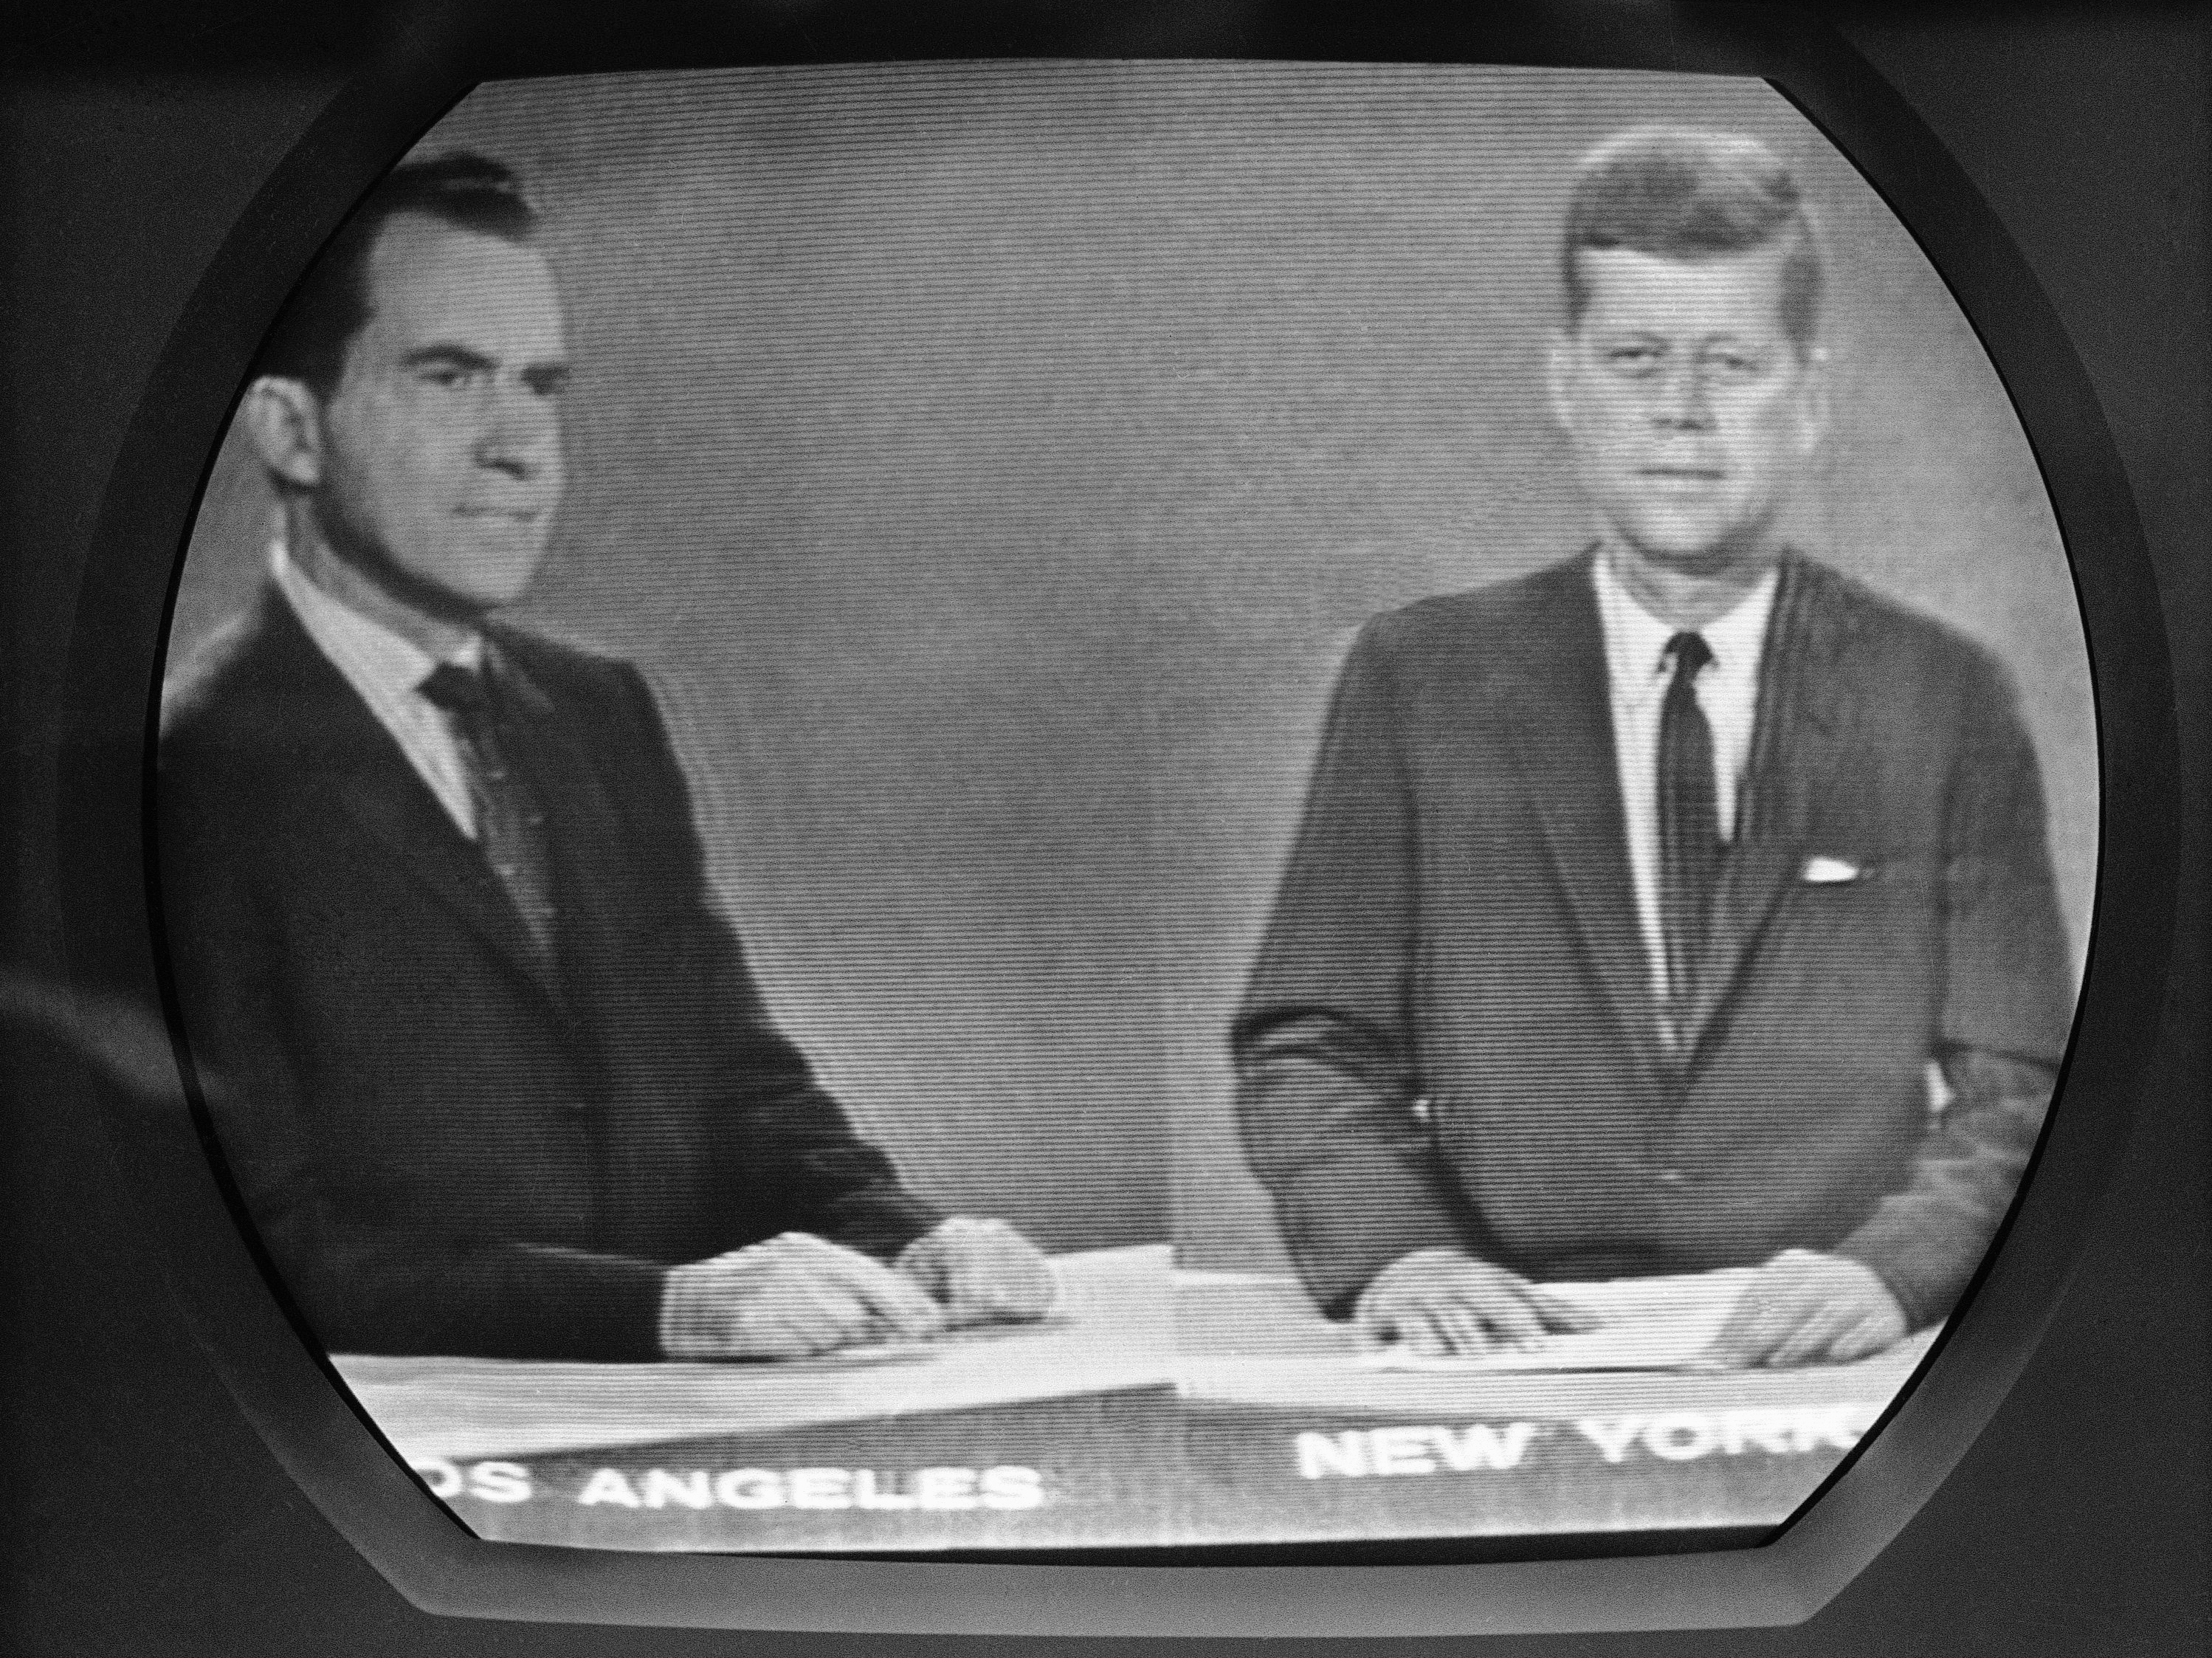 an analysis of the popular 2000 kennedy nixon presidential debates Presidential debate analysis essay for the presidential election of 2000 the than nixon although the 1960 debates were popular with the.